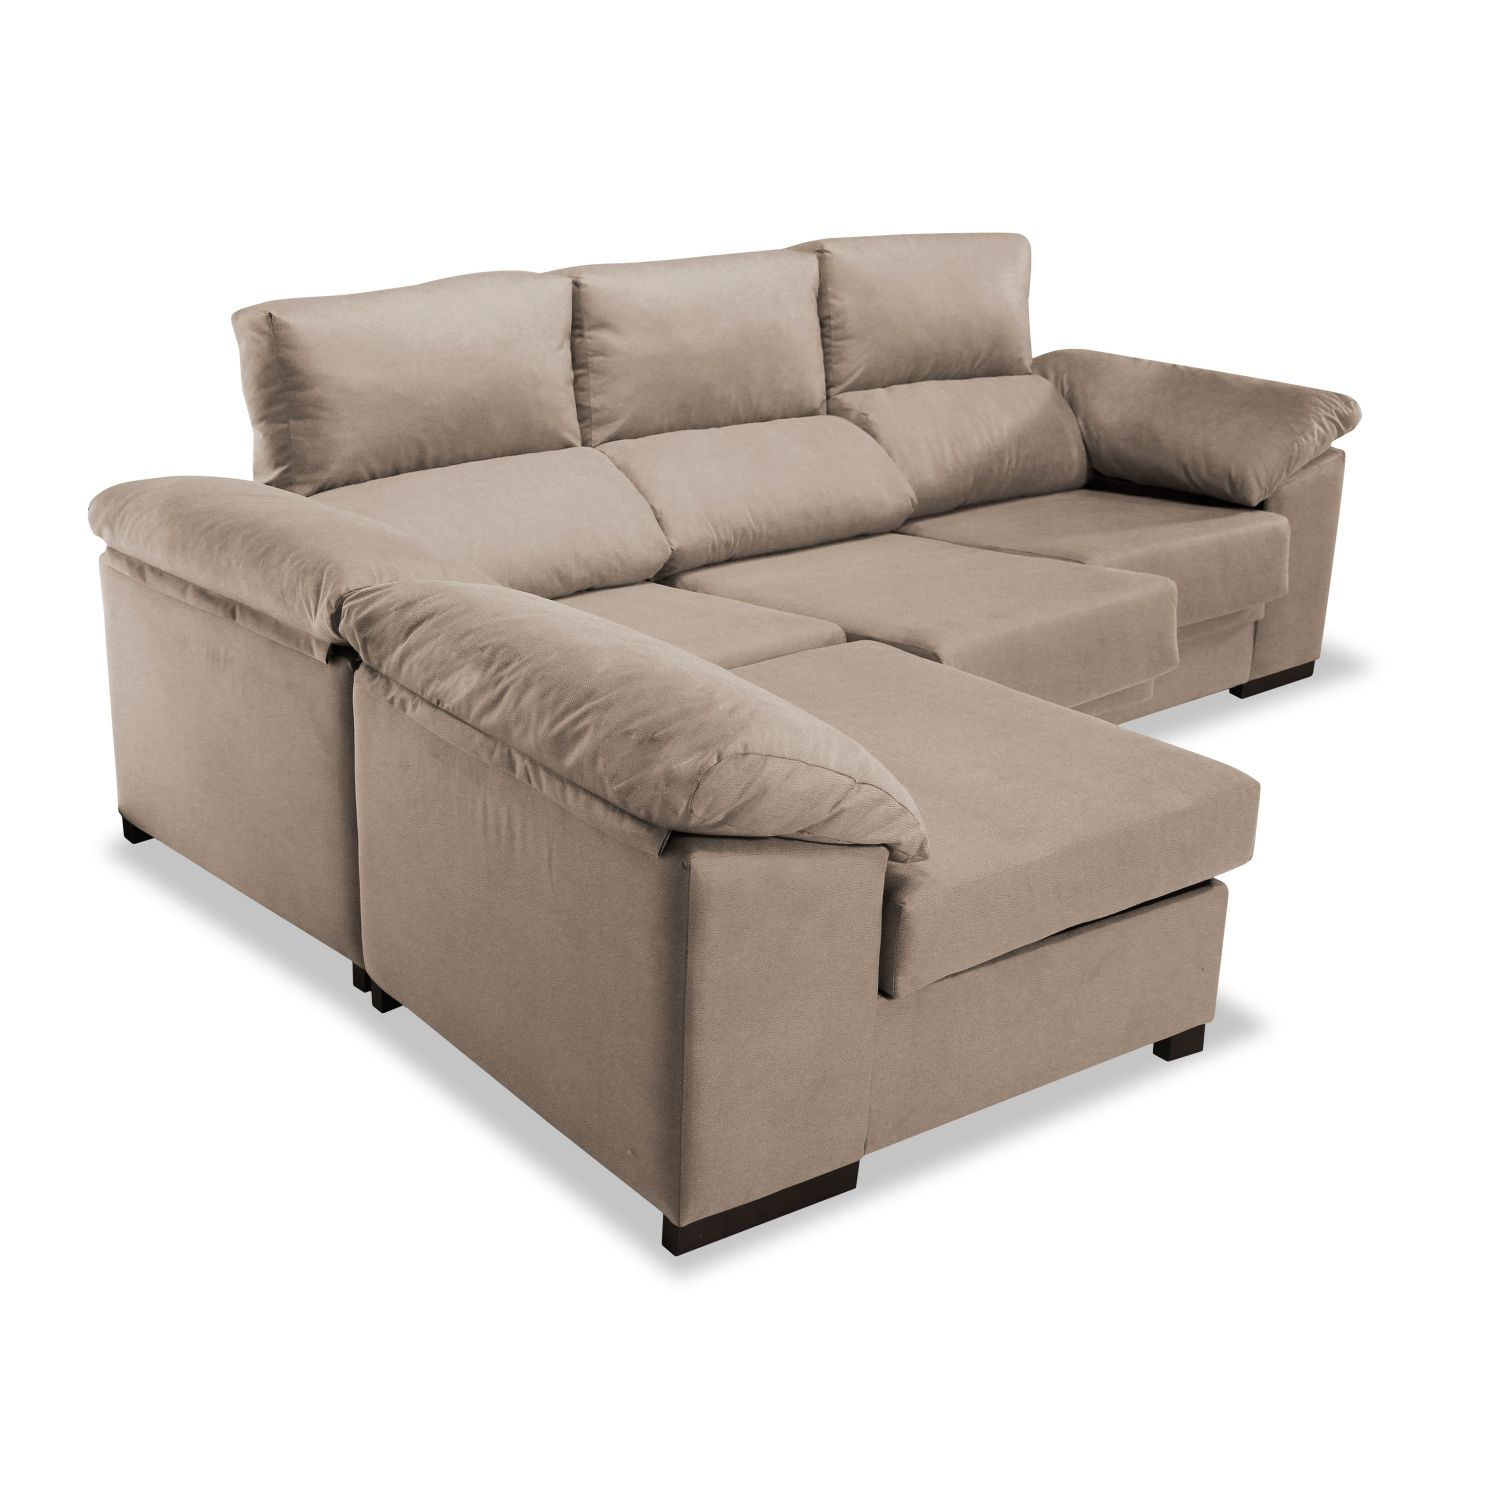 Sof chaise longue pepe beige reclinable extensible 240 cm - Sofa extensible ...